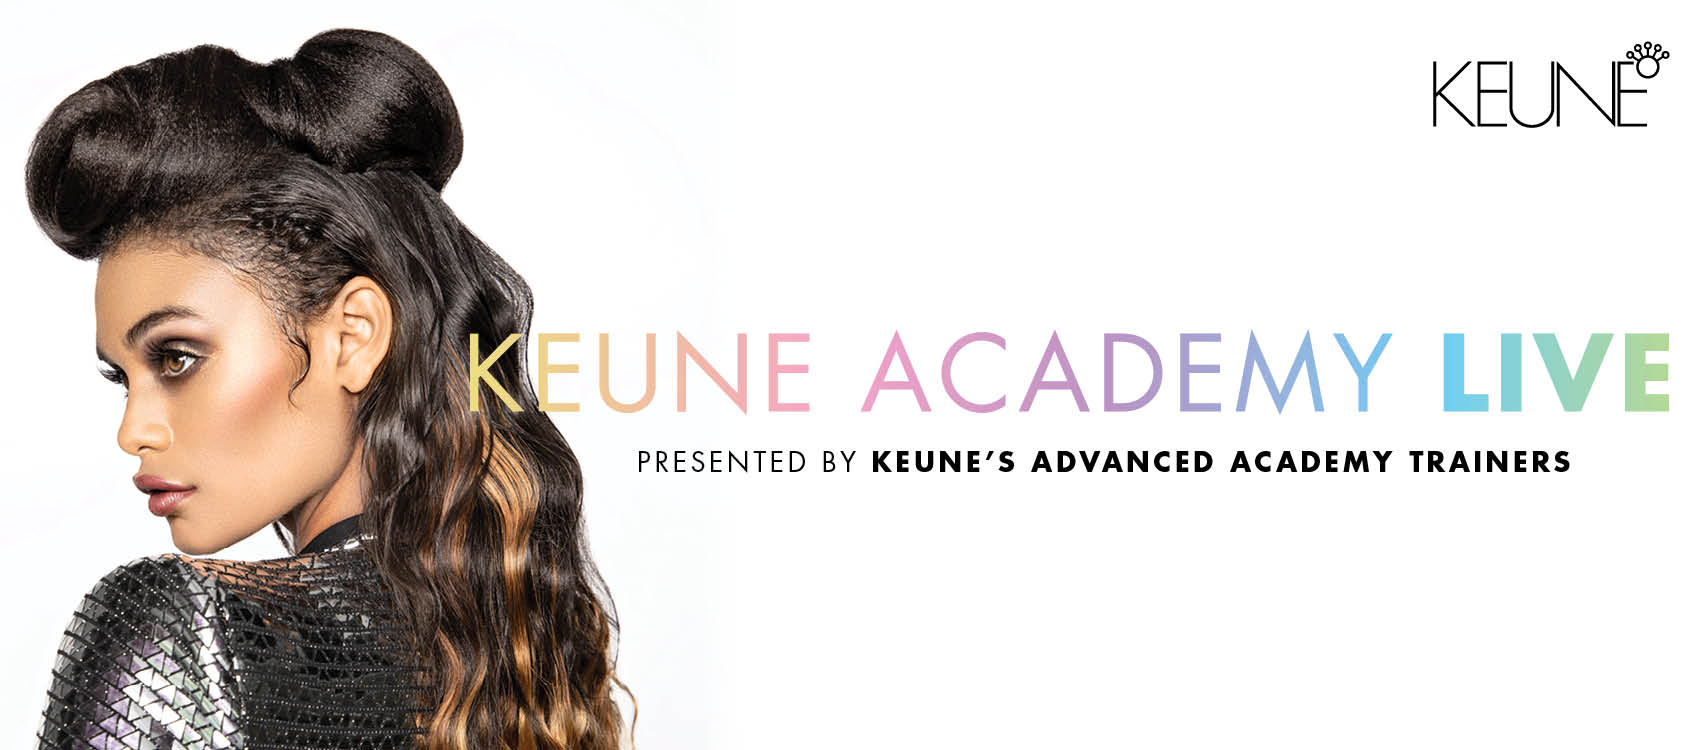 D6d42a7ddf6cfb26c44f keune advanced academy